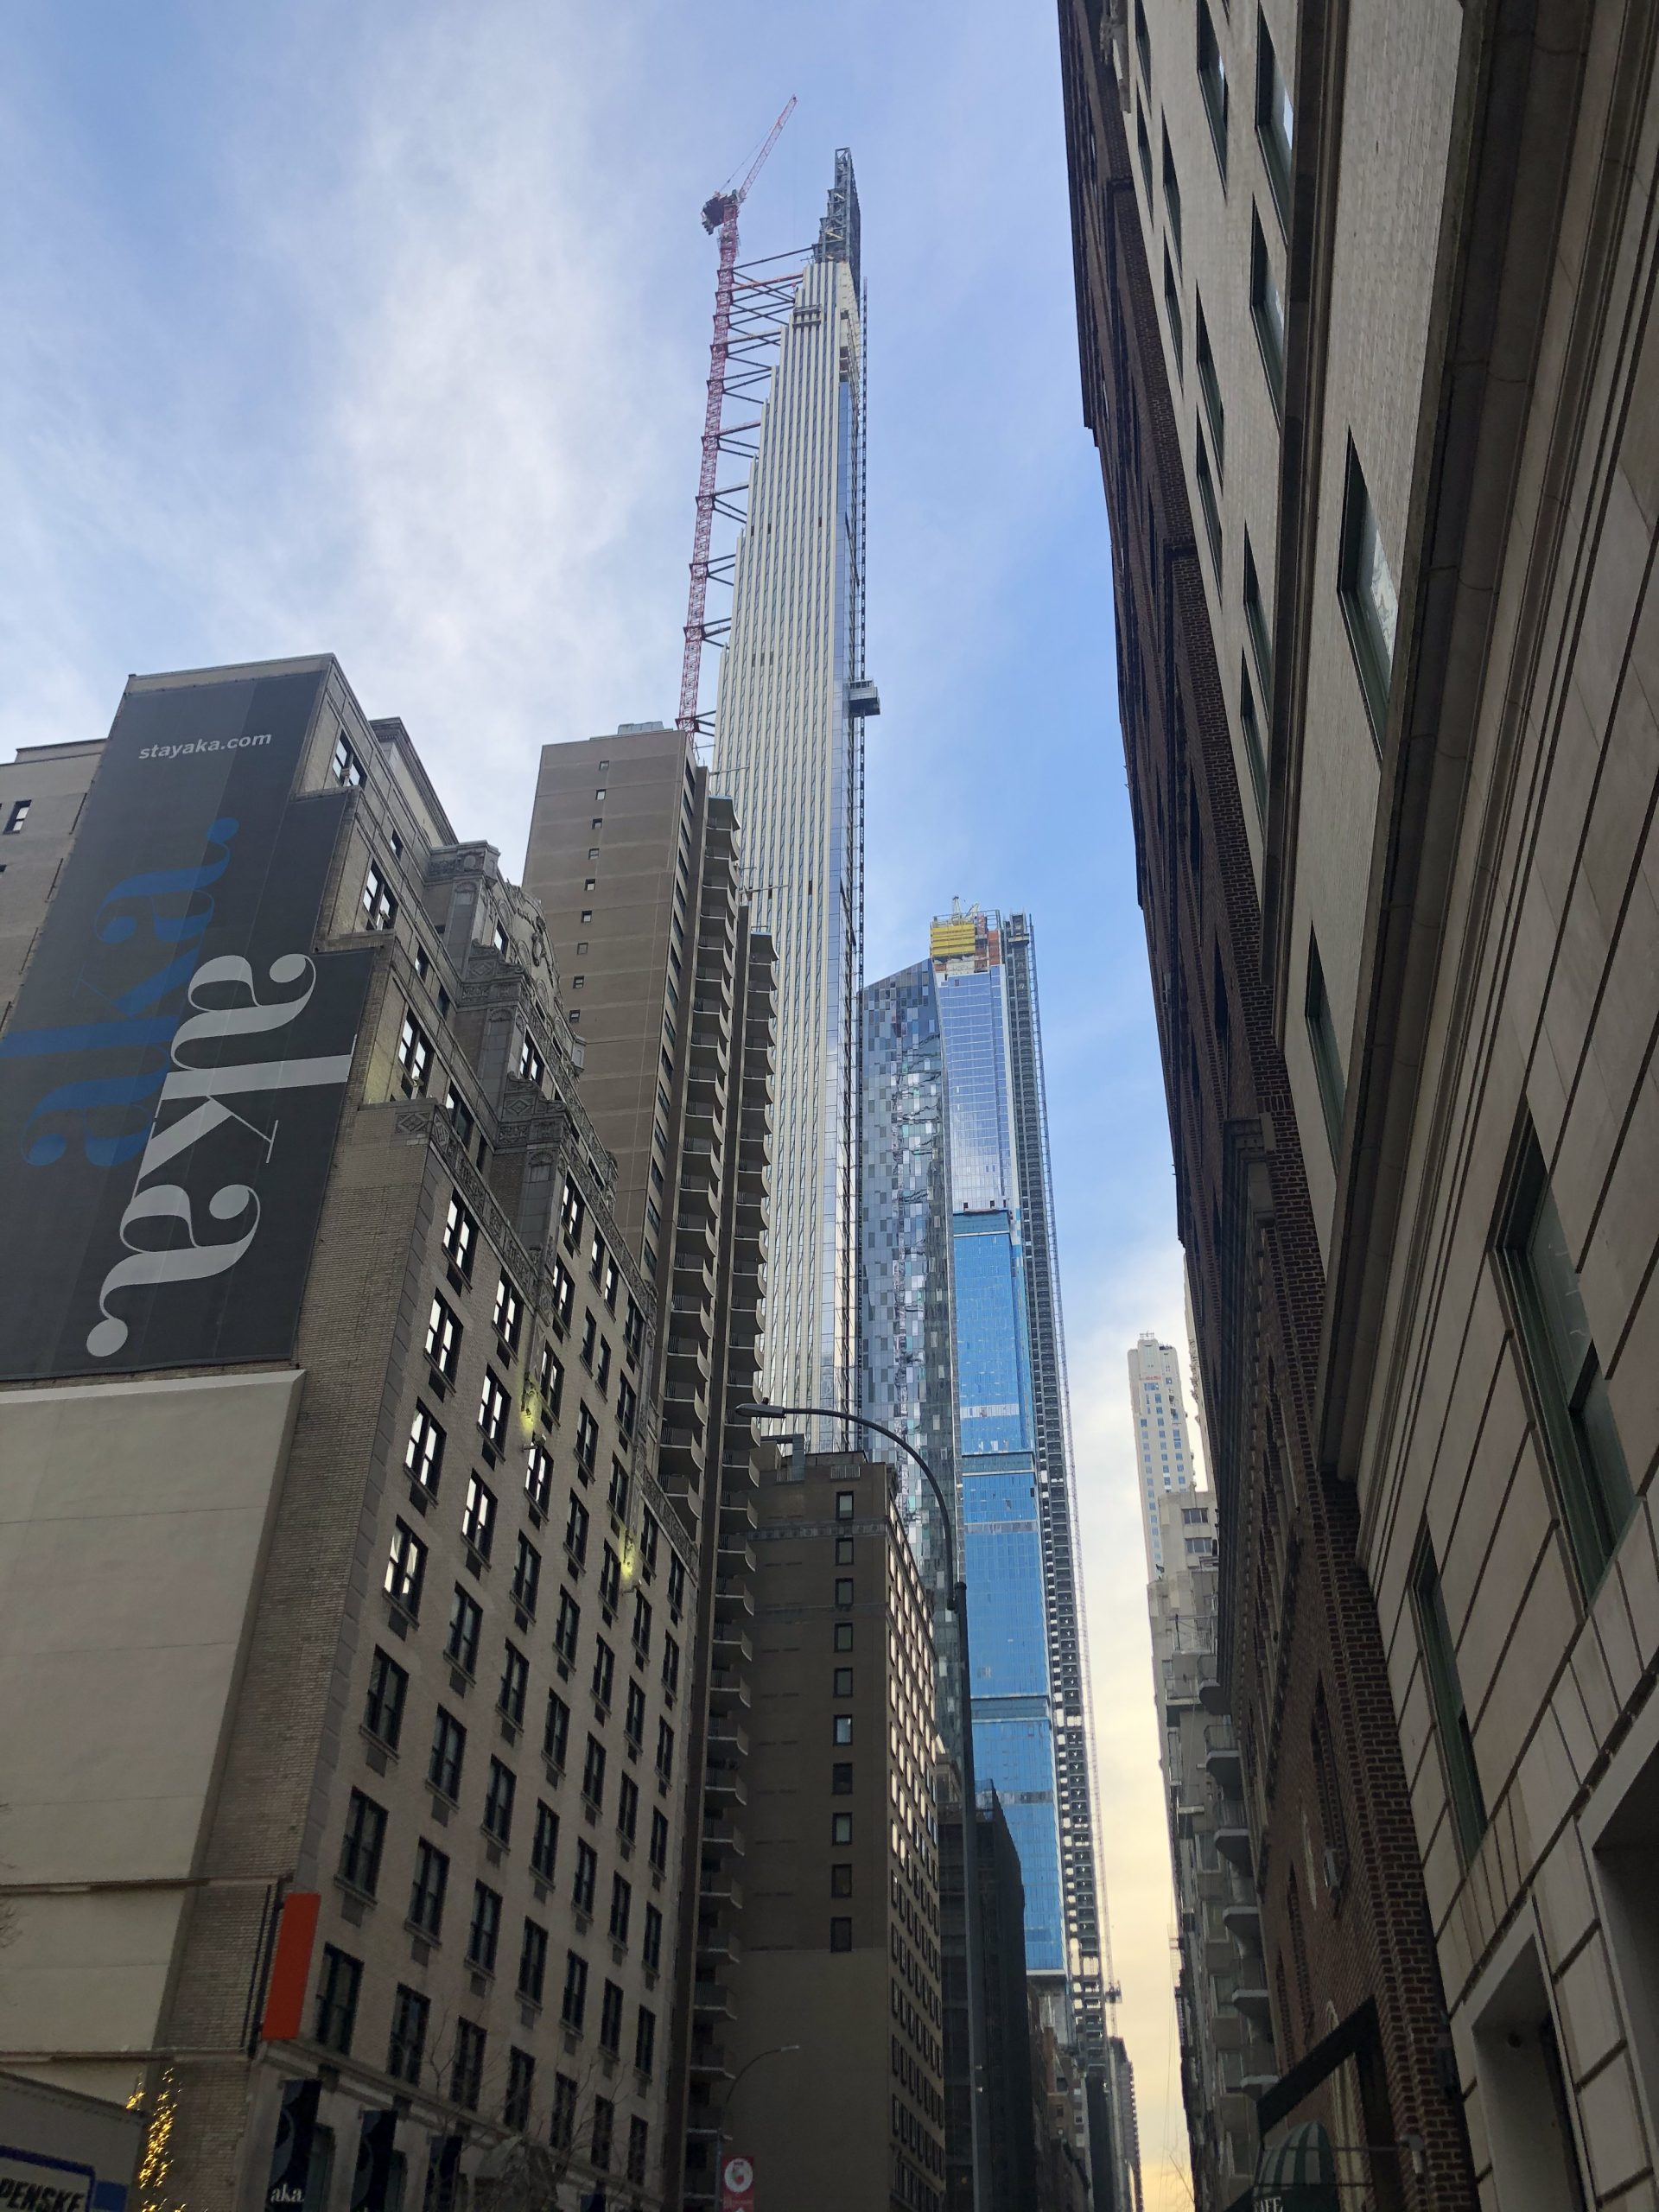 construction sites are reopening in NYC